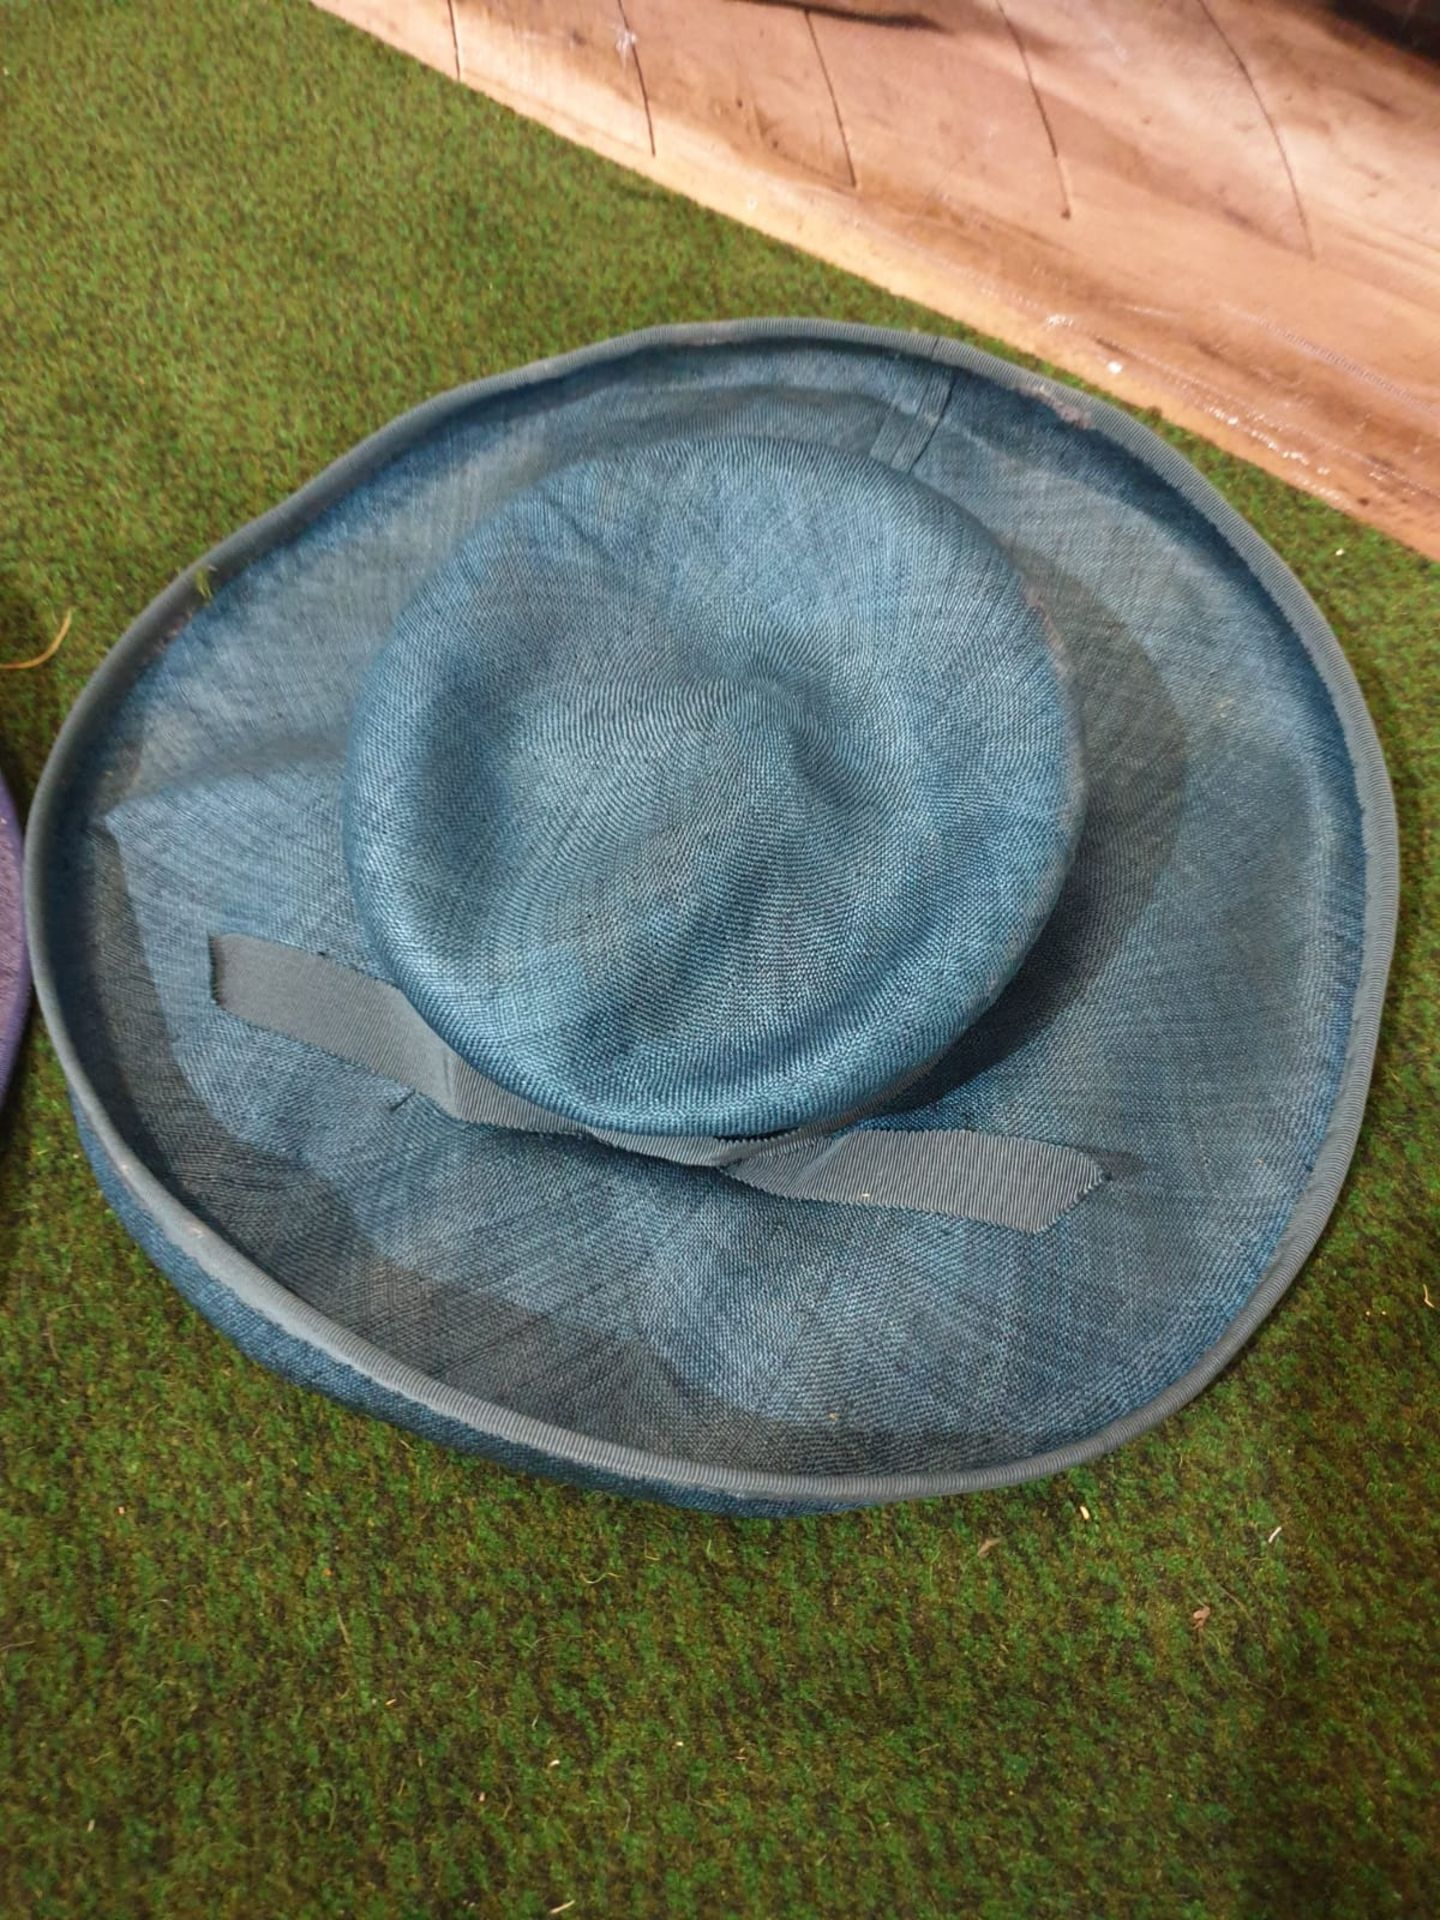 2 x Edith Poole from South Molton Street London Vintage Ladies Hats 1 x Navy Blue straw hat and 1 - Image 2 of 7